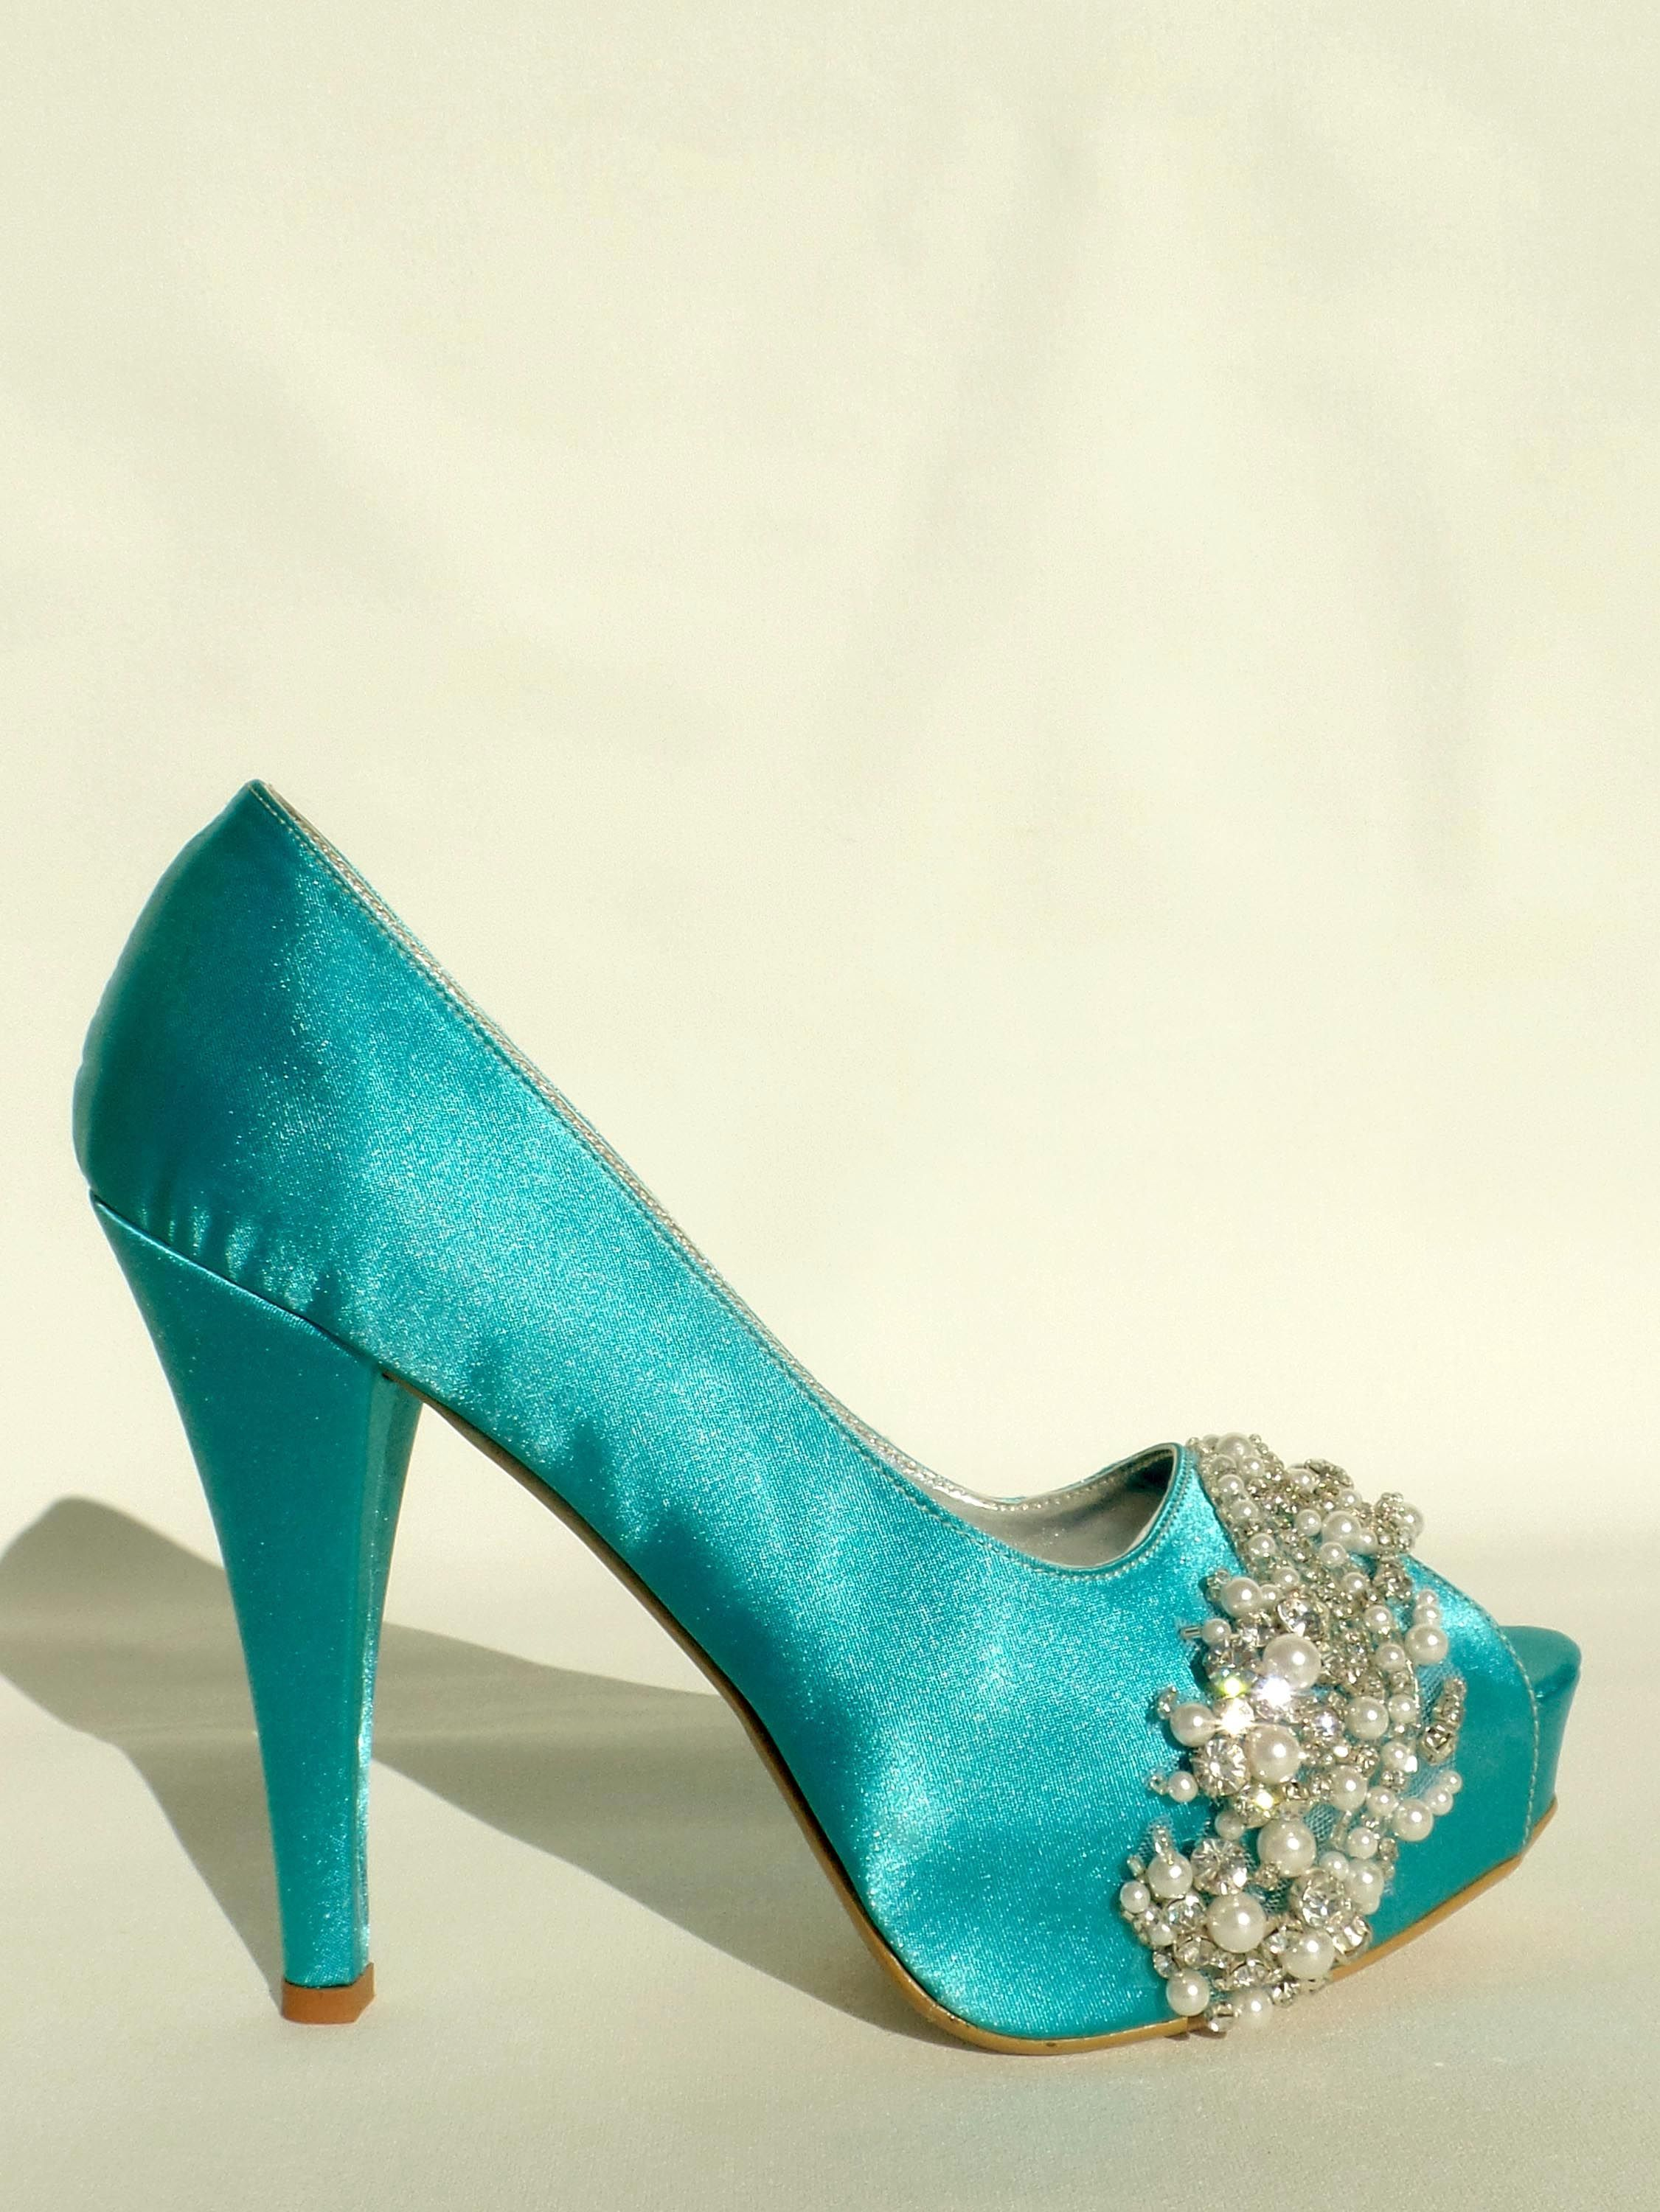 Teal satin wedding shoes with rhinestonesupearls  Tealusilver